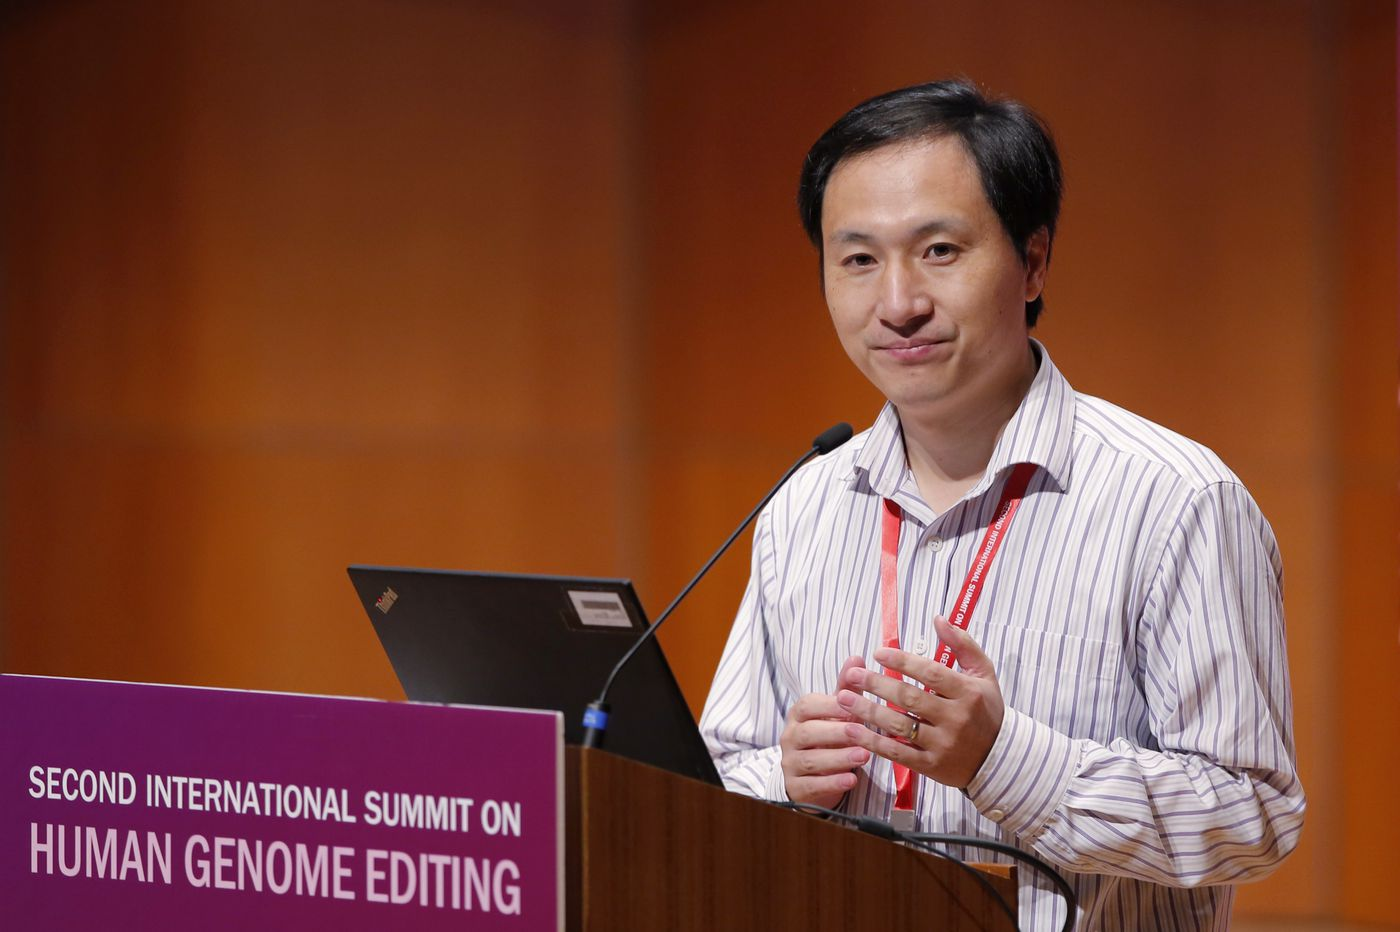 Scientists call for a halt to genetically editing embryos, rebuke Chinese researcher